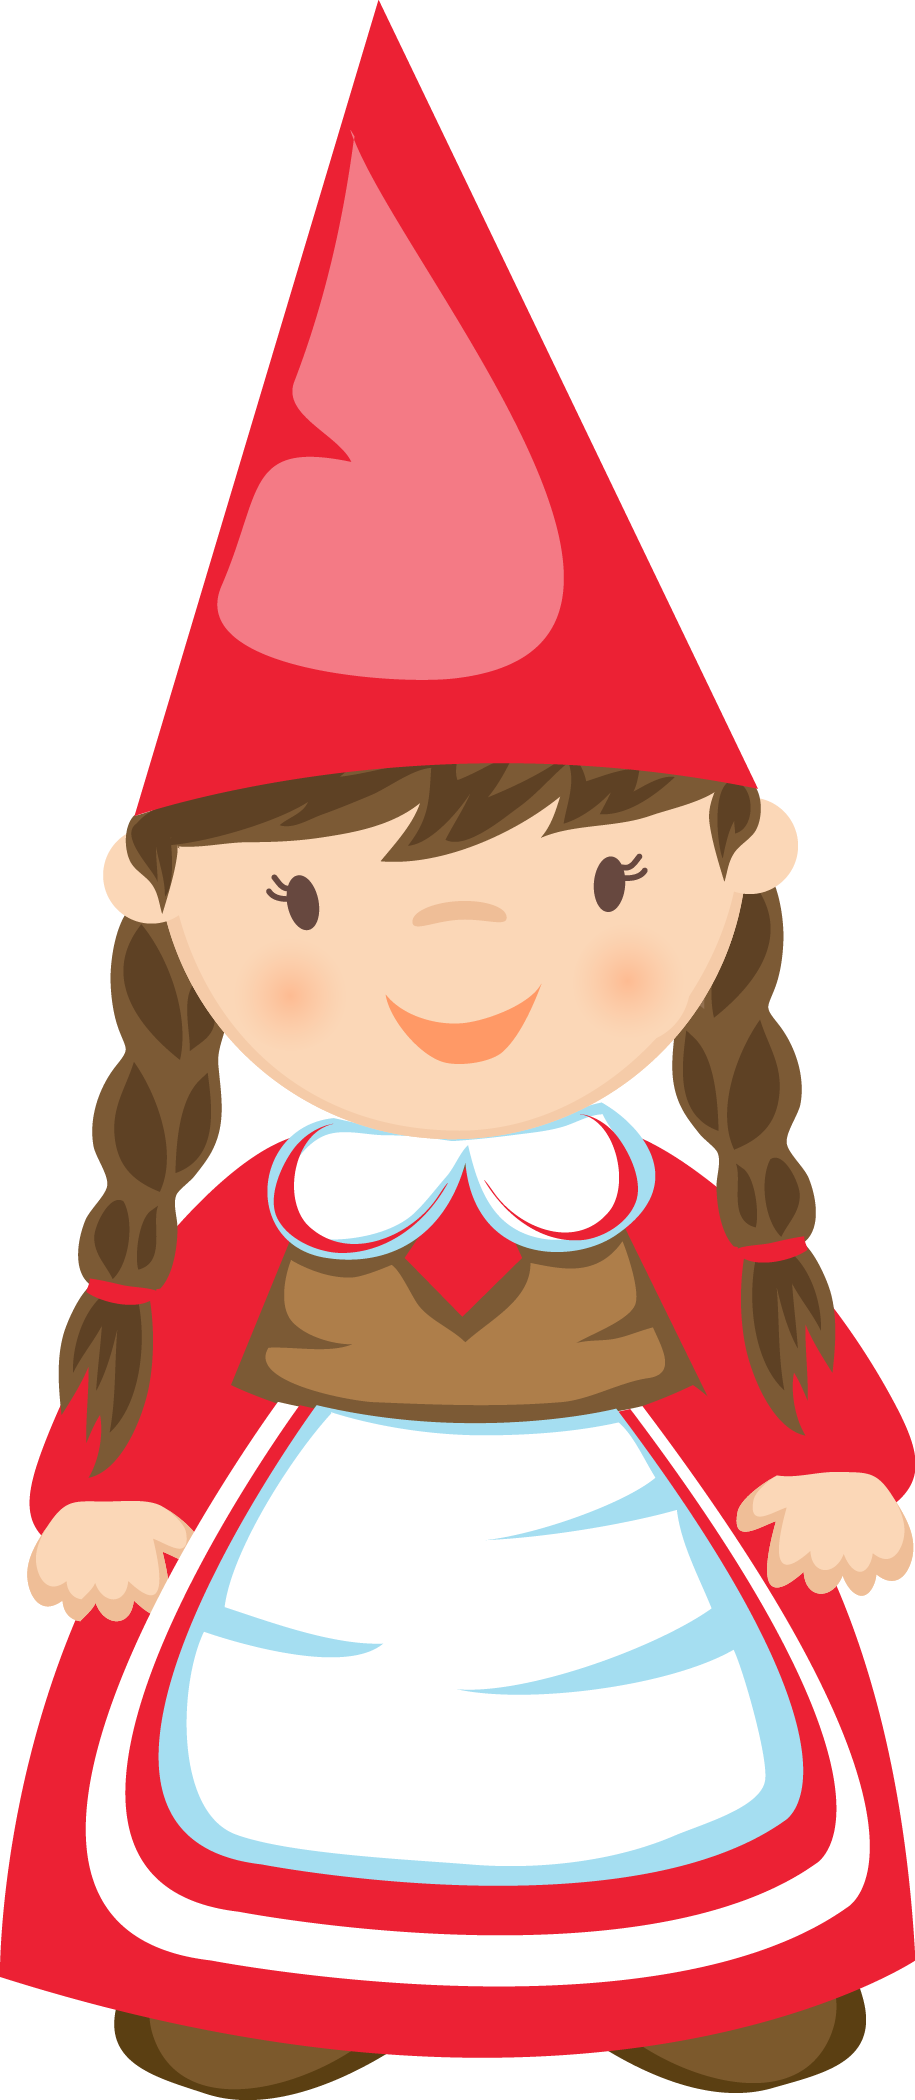 Gnomes Clip Art - Cliparts.co: cliparts.co/gnomes-clip-art